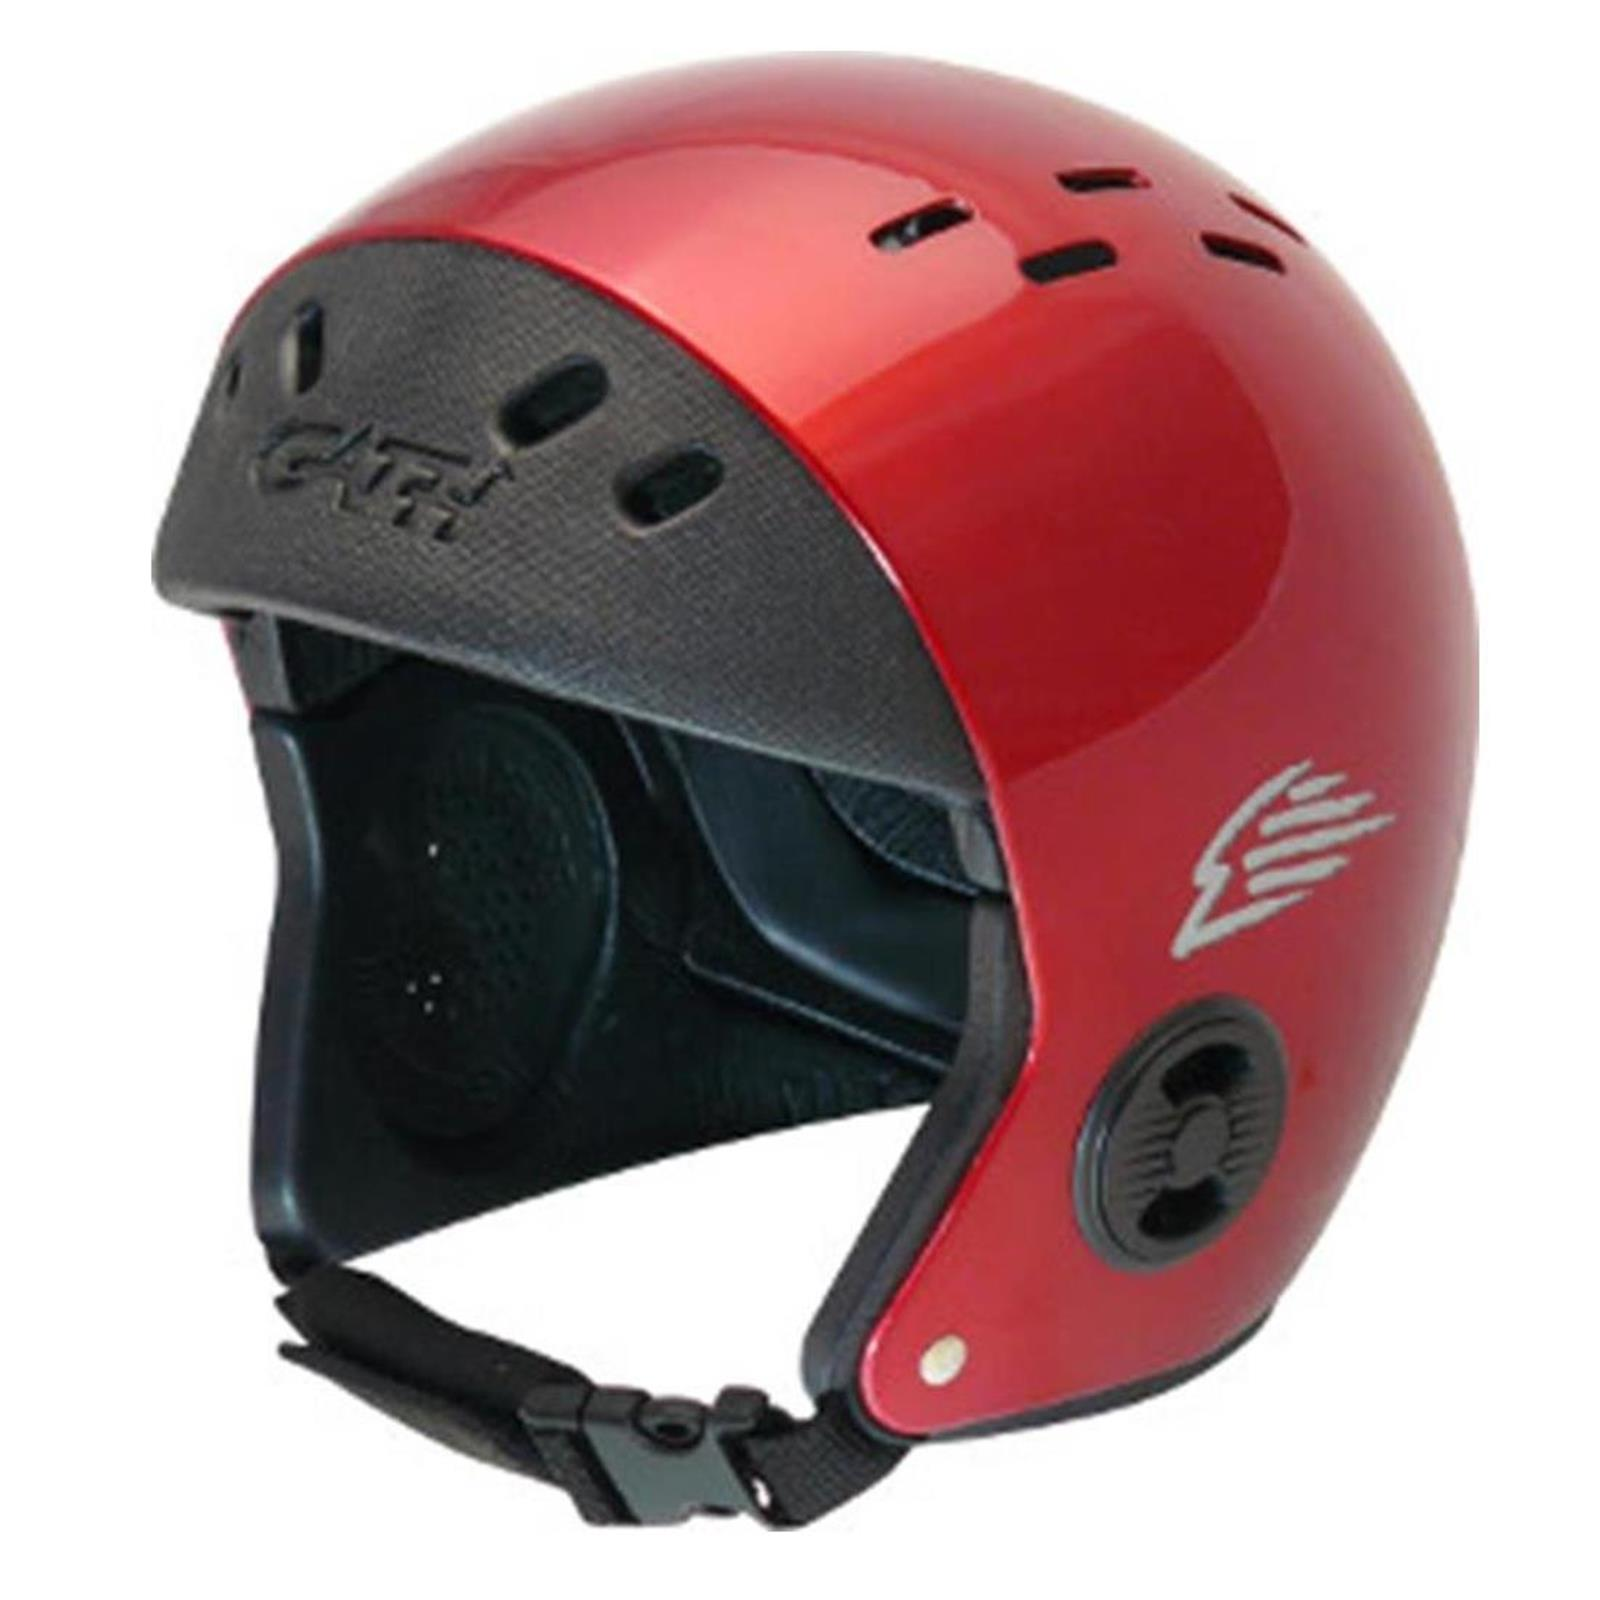 GATH Helm Standard M Red gloss